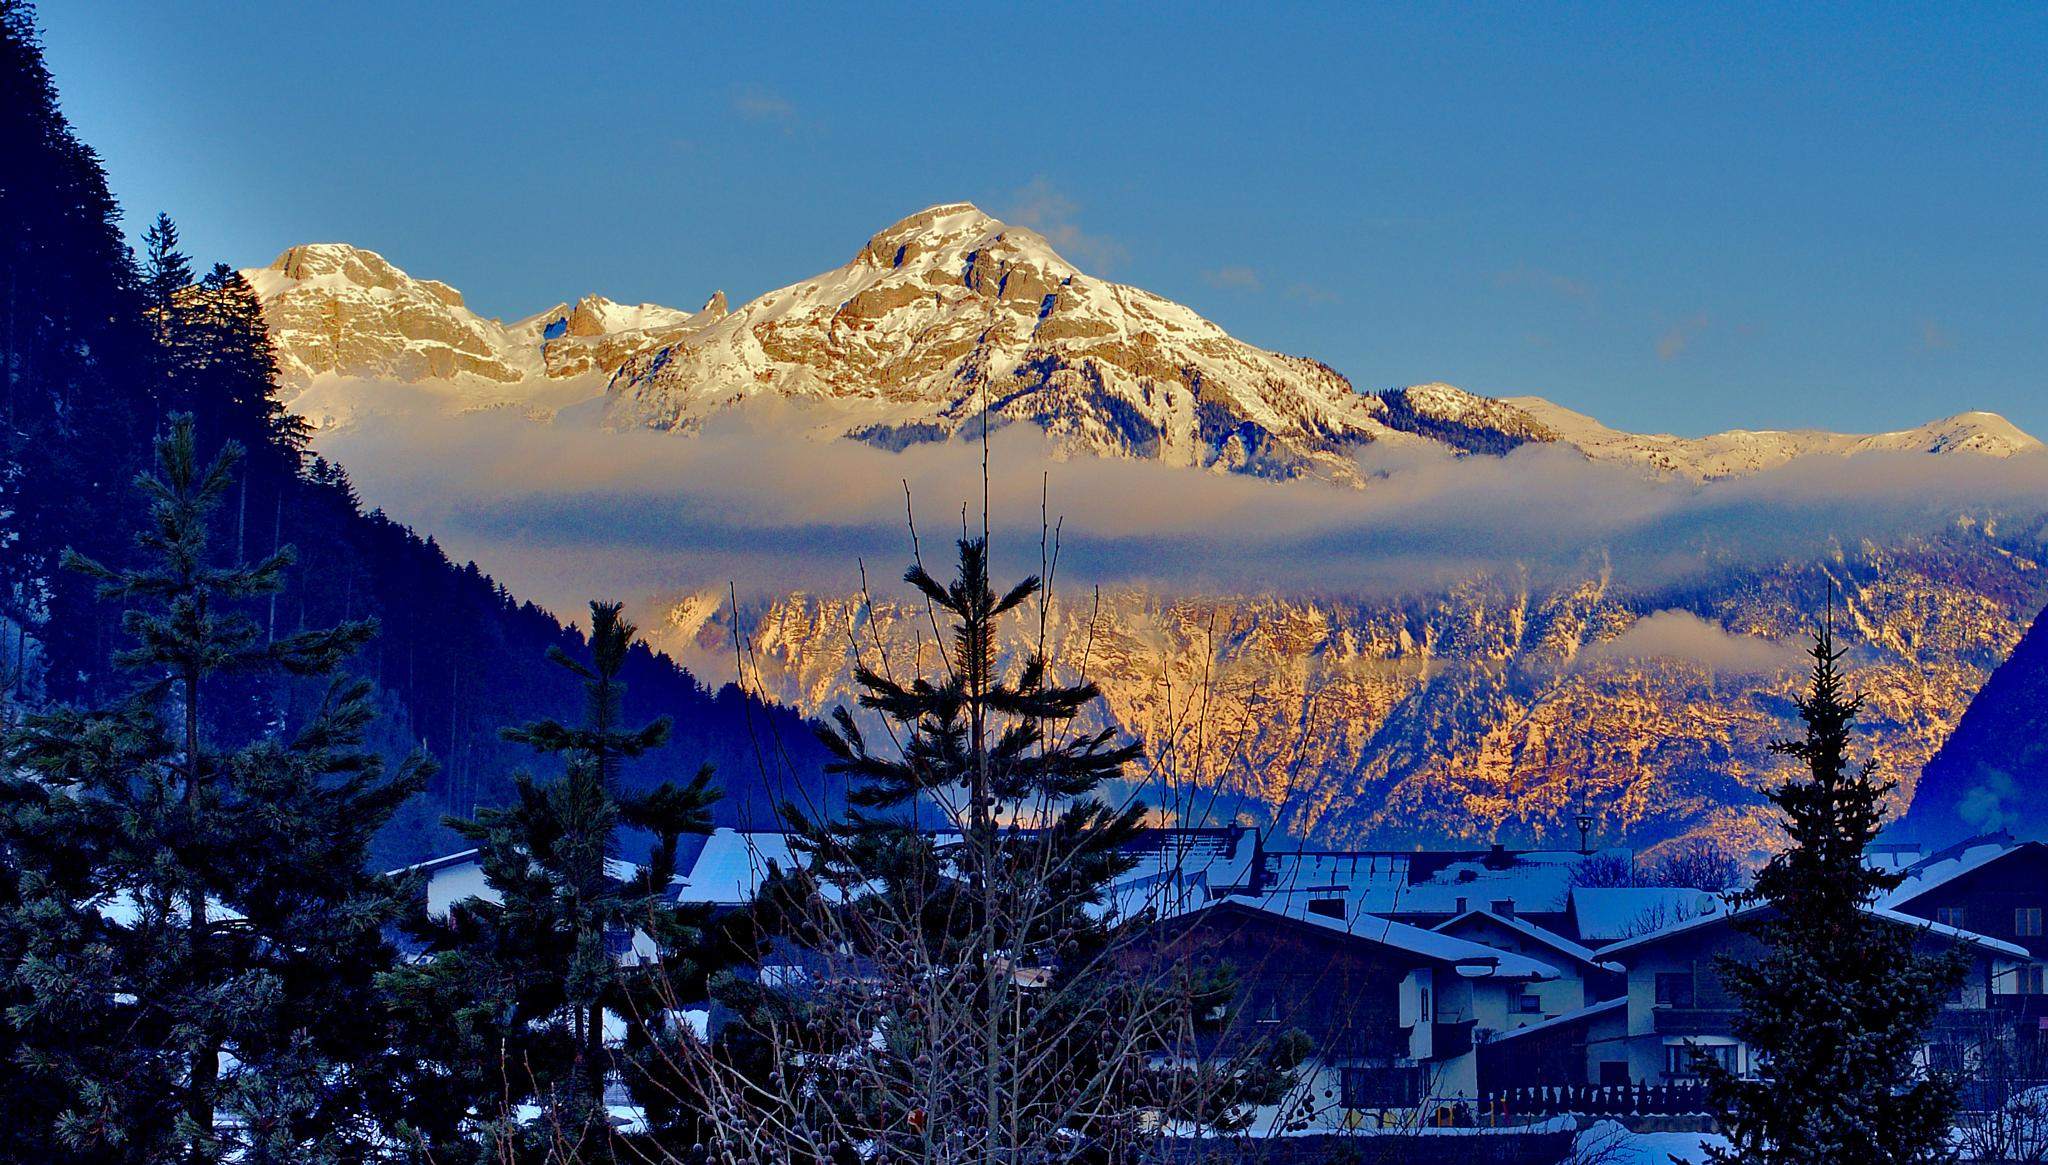 Clear morning in Austria by Florian B